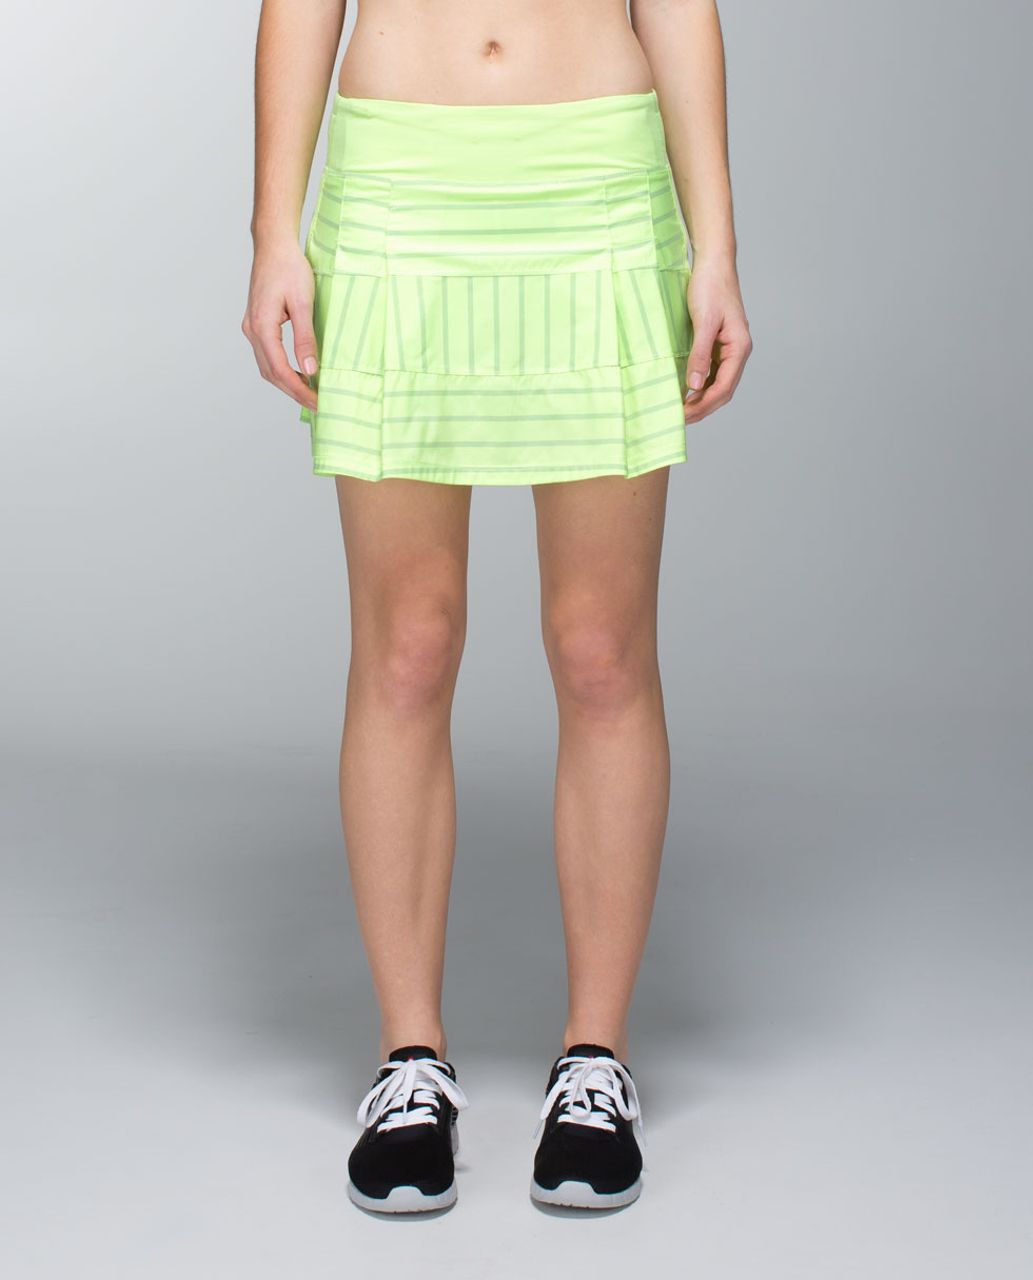 Lululemon Pace Rival Skirt (Tall) *2-way Stretch - Deauville Stripe Clear Mint Solid / Clear Mint